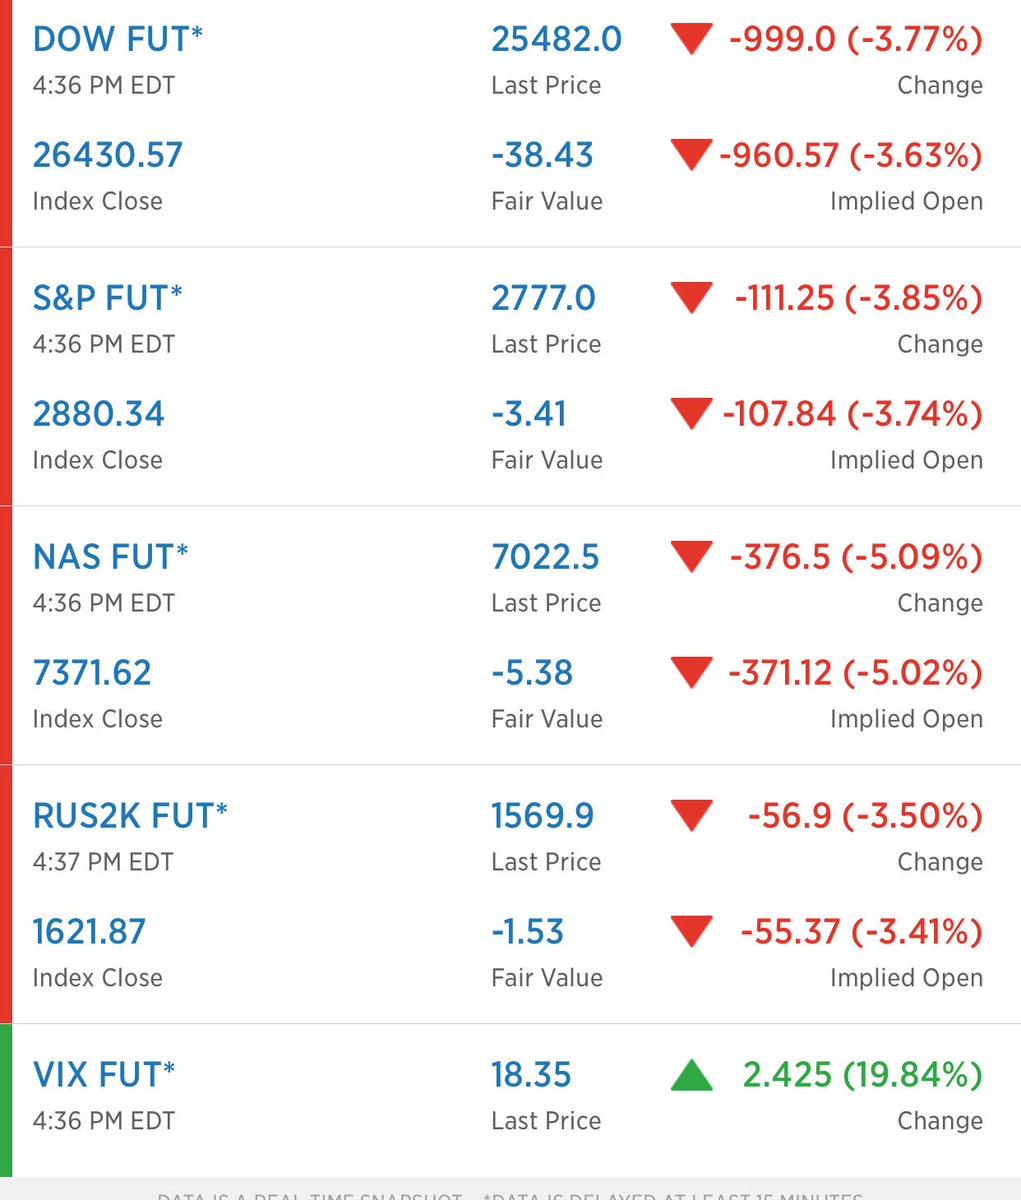 Dow Futures  <br>http://pic.twitter.com/xCge2QErYc